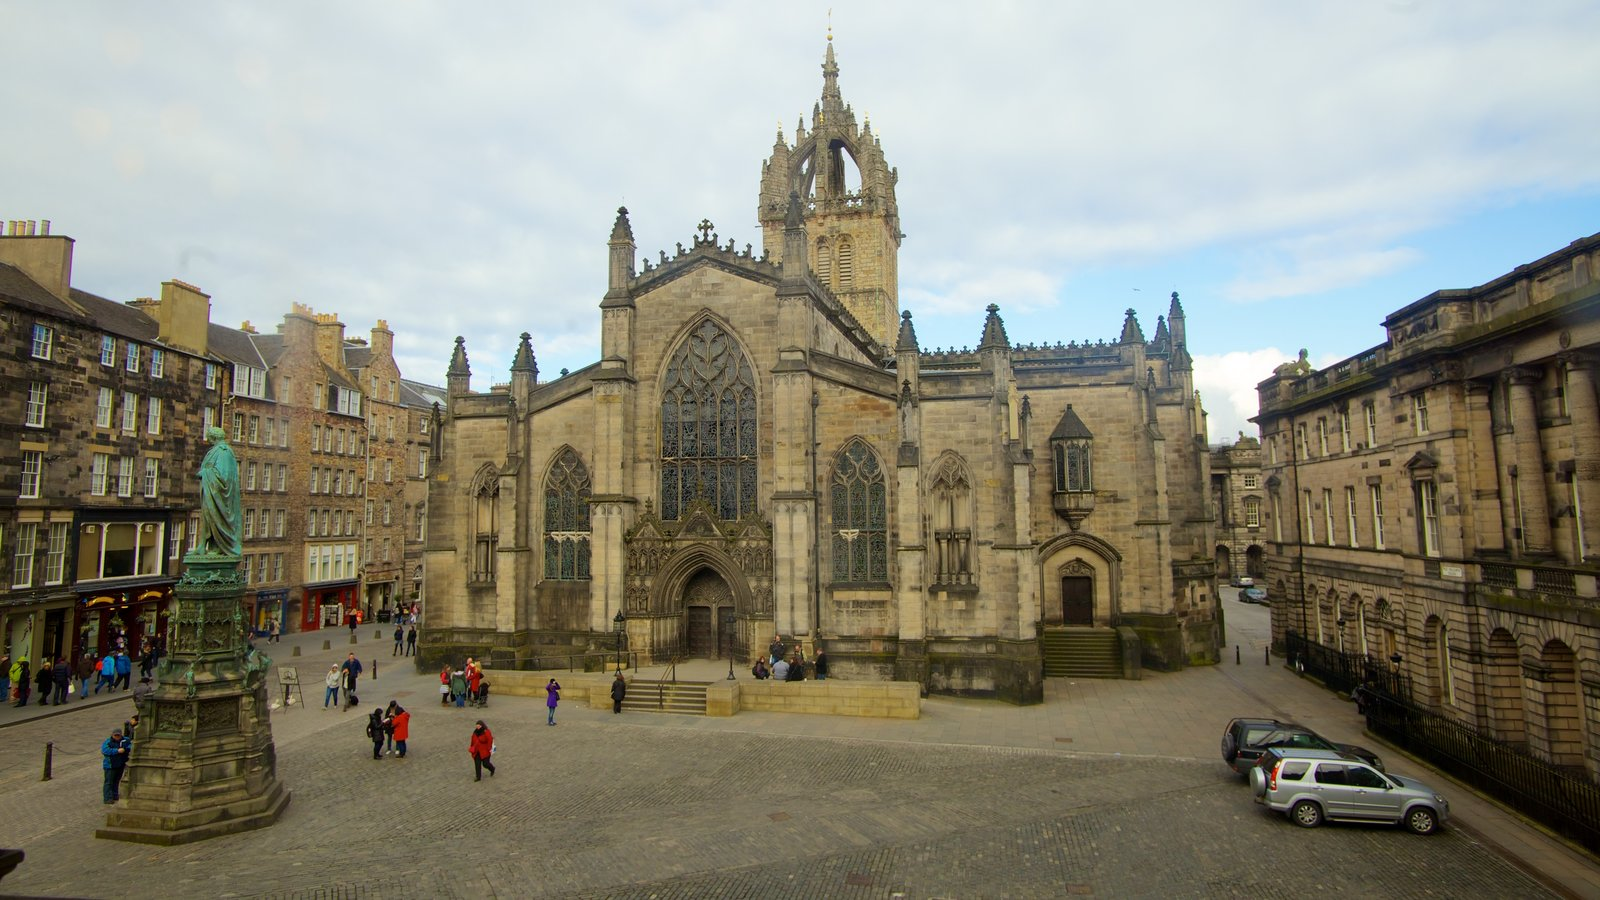 St. Giles\\\' Cathedral which includes religious elements, a church or cathedral and a square or plaza